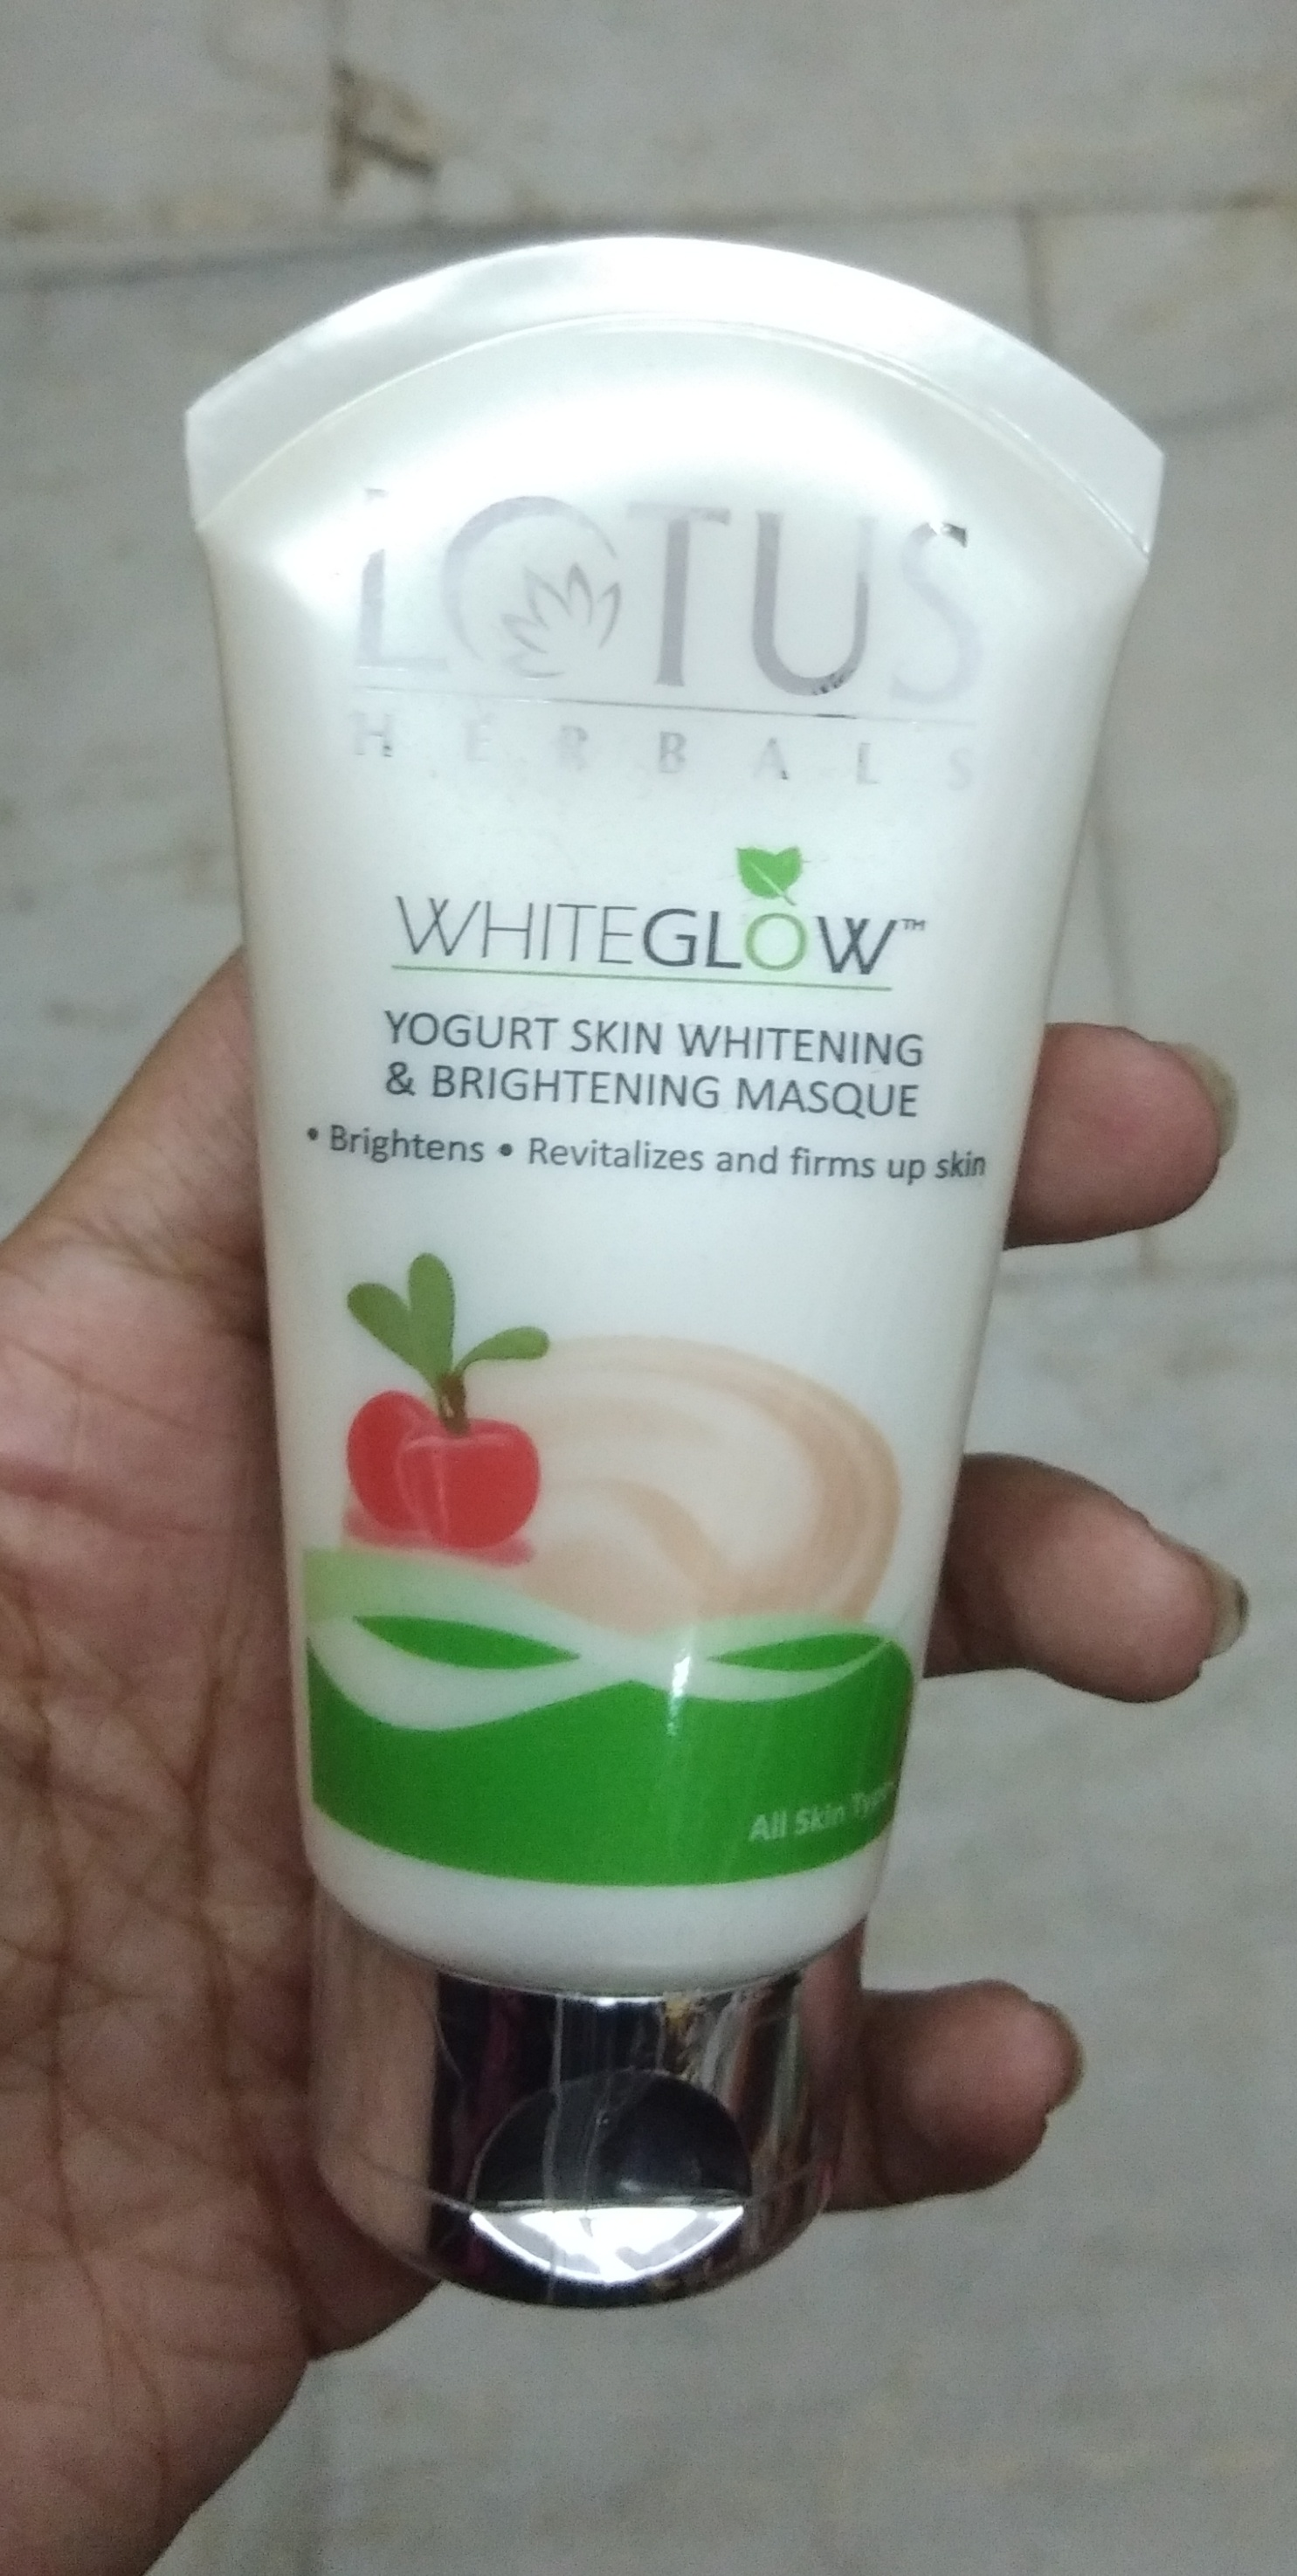 Lotus Herbals Whiteglow Yogurt Skin Whitening & Brightening Masque-Worth a try-By Nasreen-1